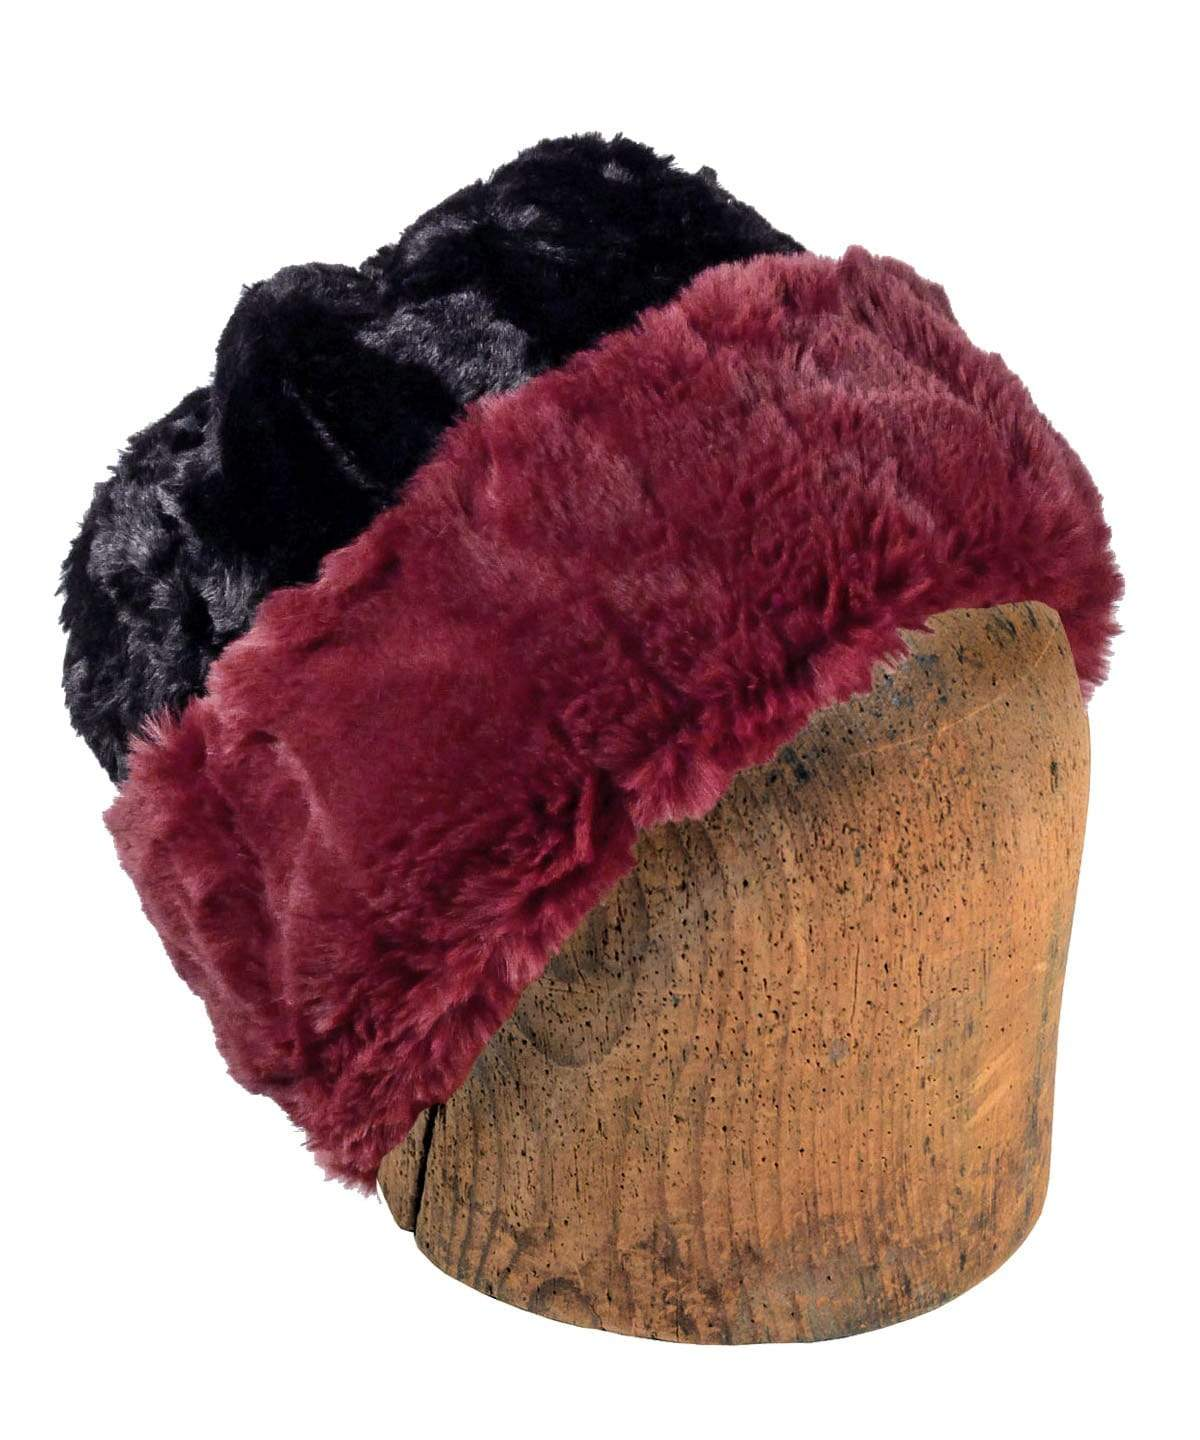 Men's Beanie Hat, Reversible - Luxury Faux Fur in Cranberry Creek (Limited Availability)